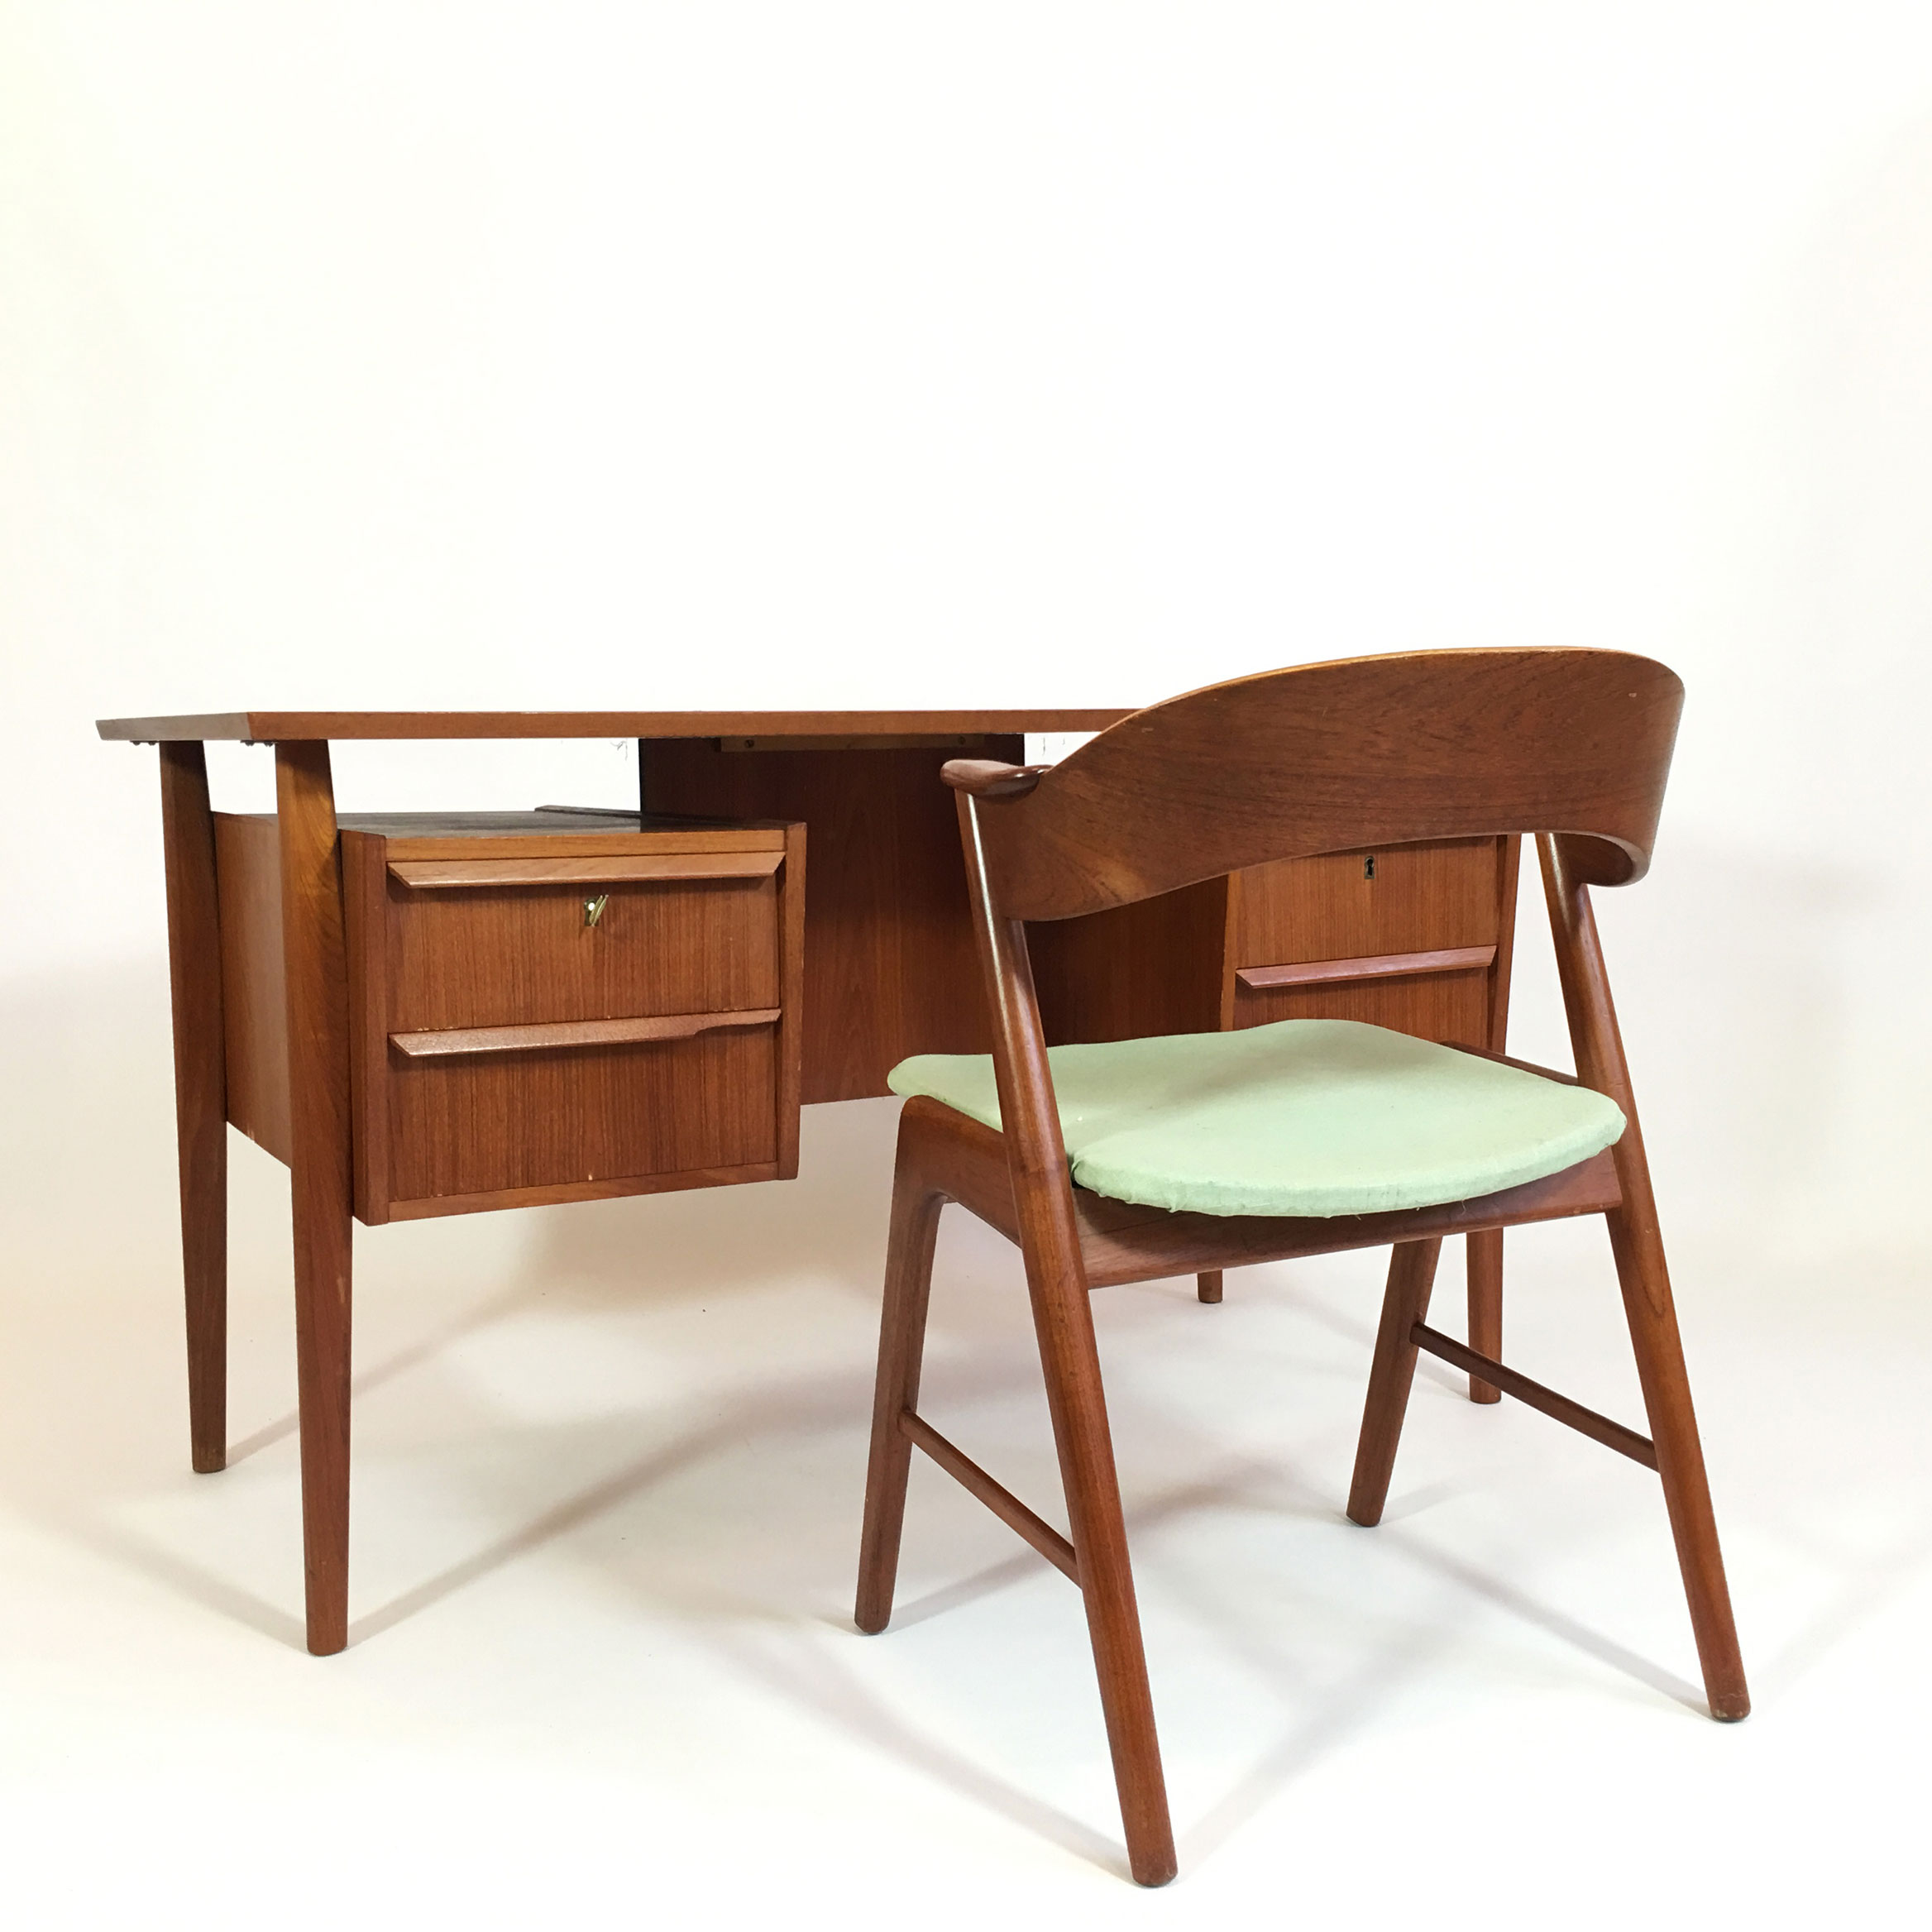 danish teak desk from the 1960's-1970's